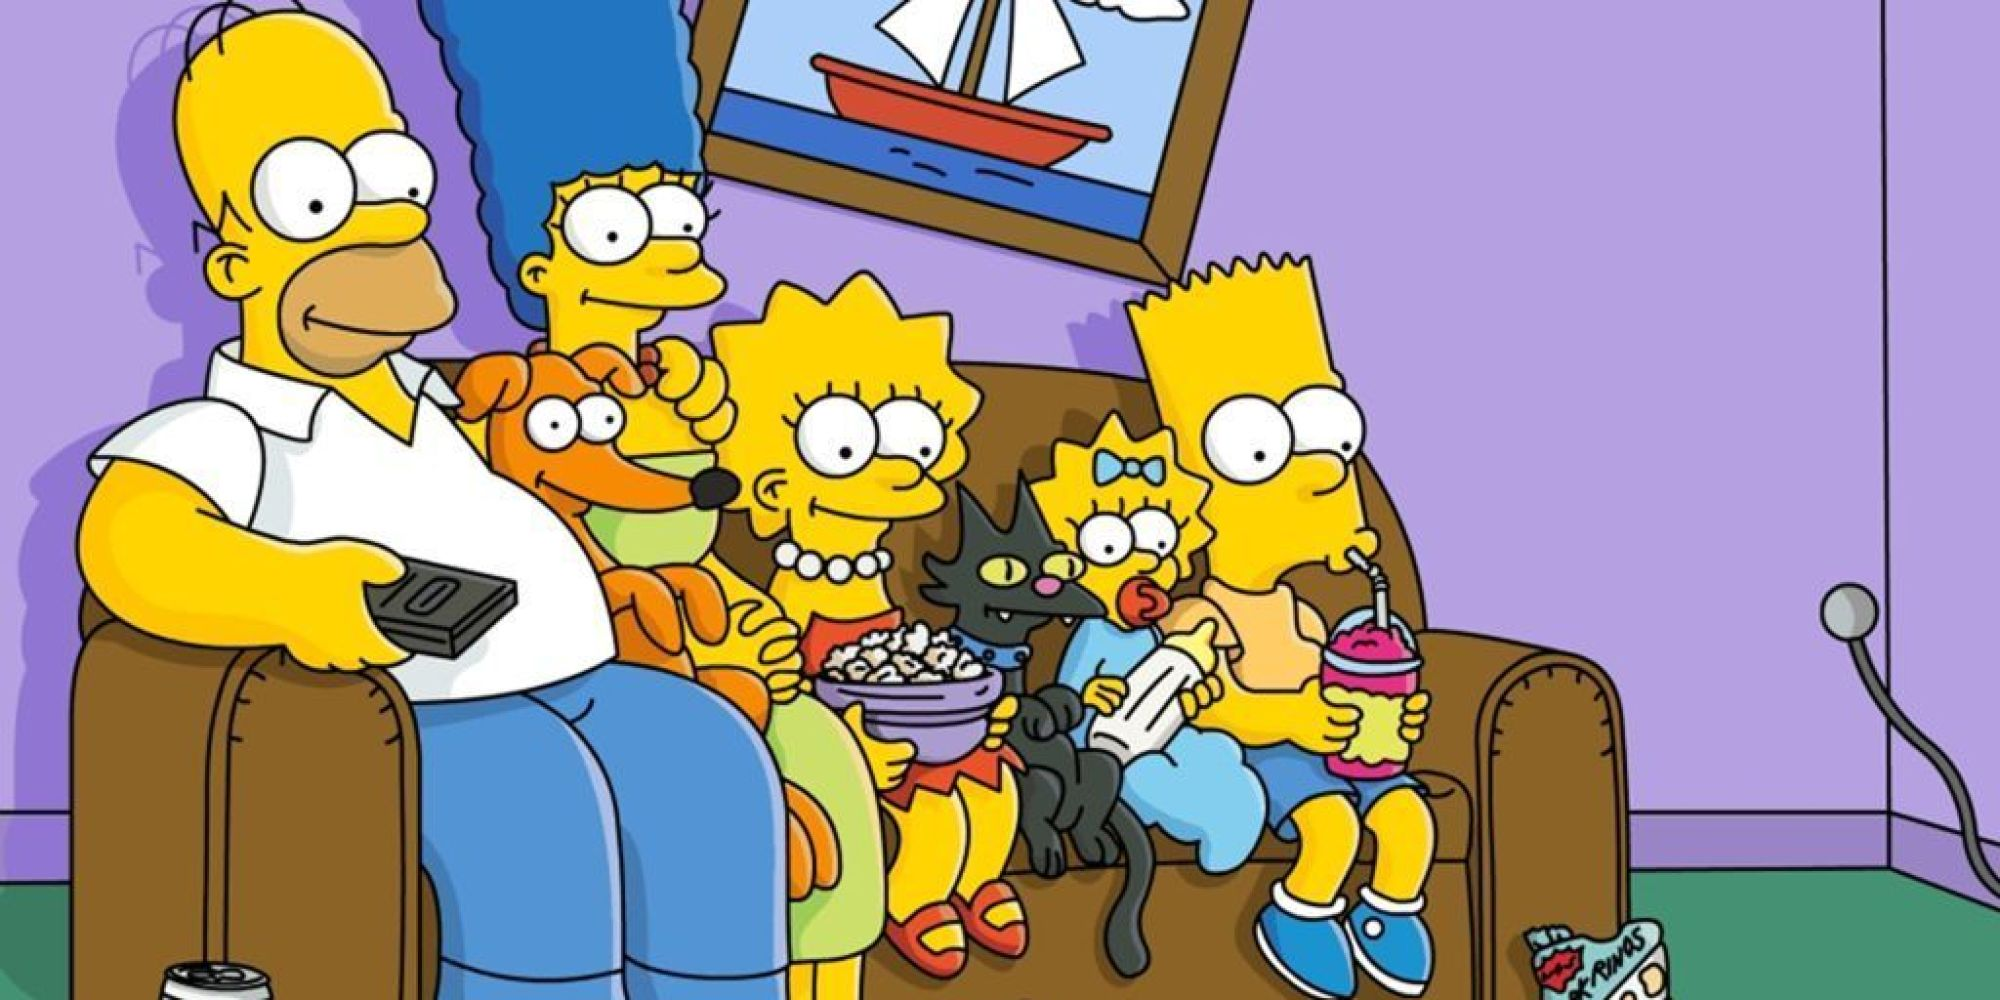 Woo-hoo! Every 'Simpsons' Episode Will Soon Be Available Online